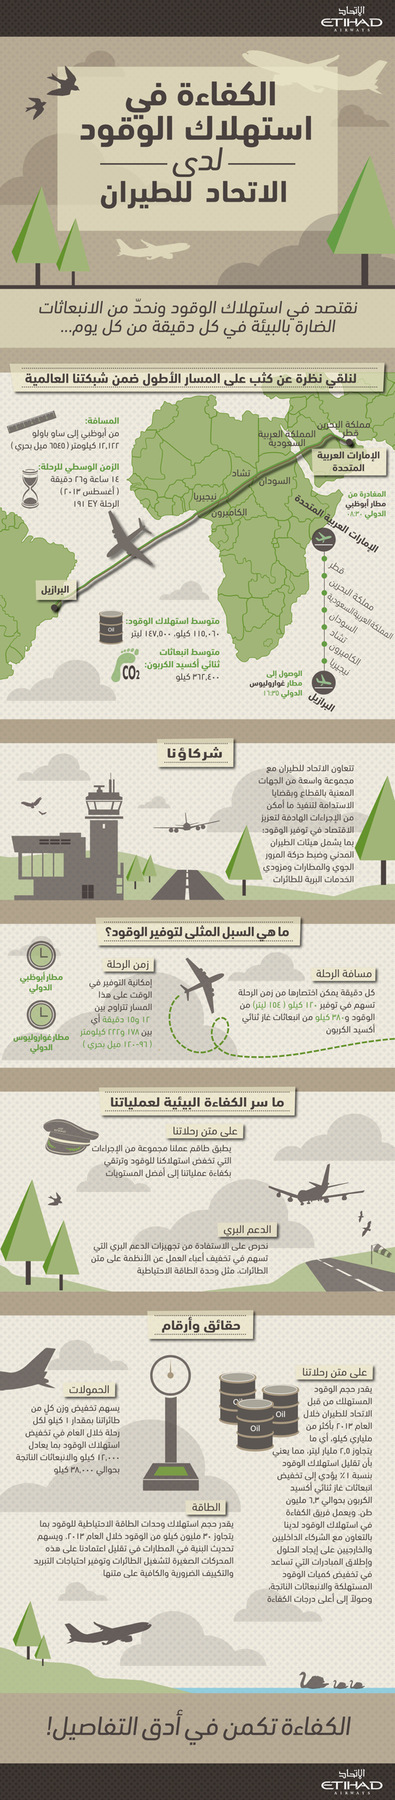 Nejib Design - Etihad Airways Fuel Optimisation Arabic Version